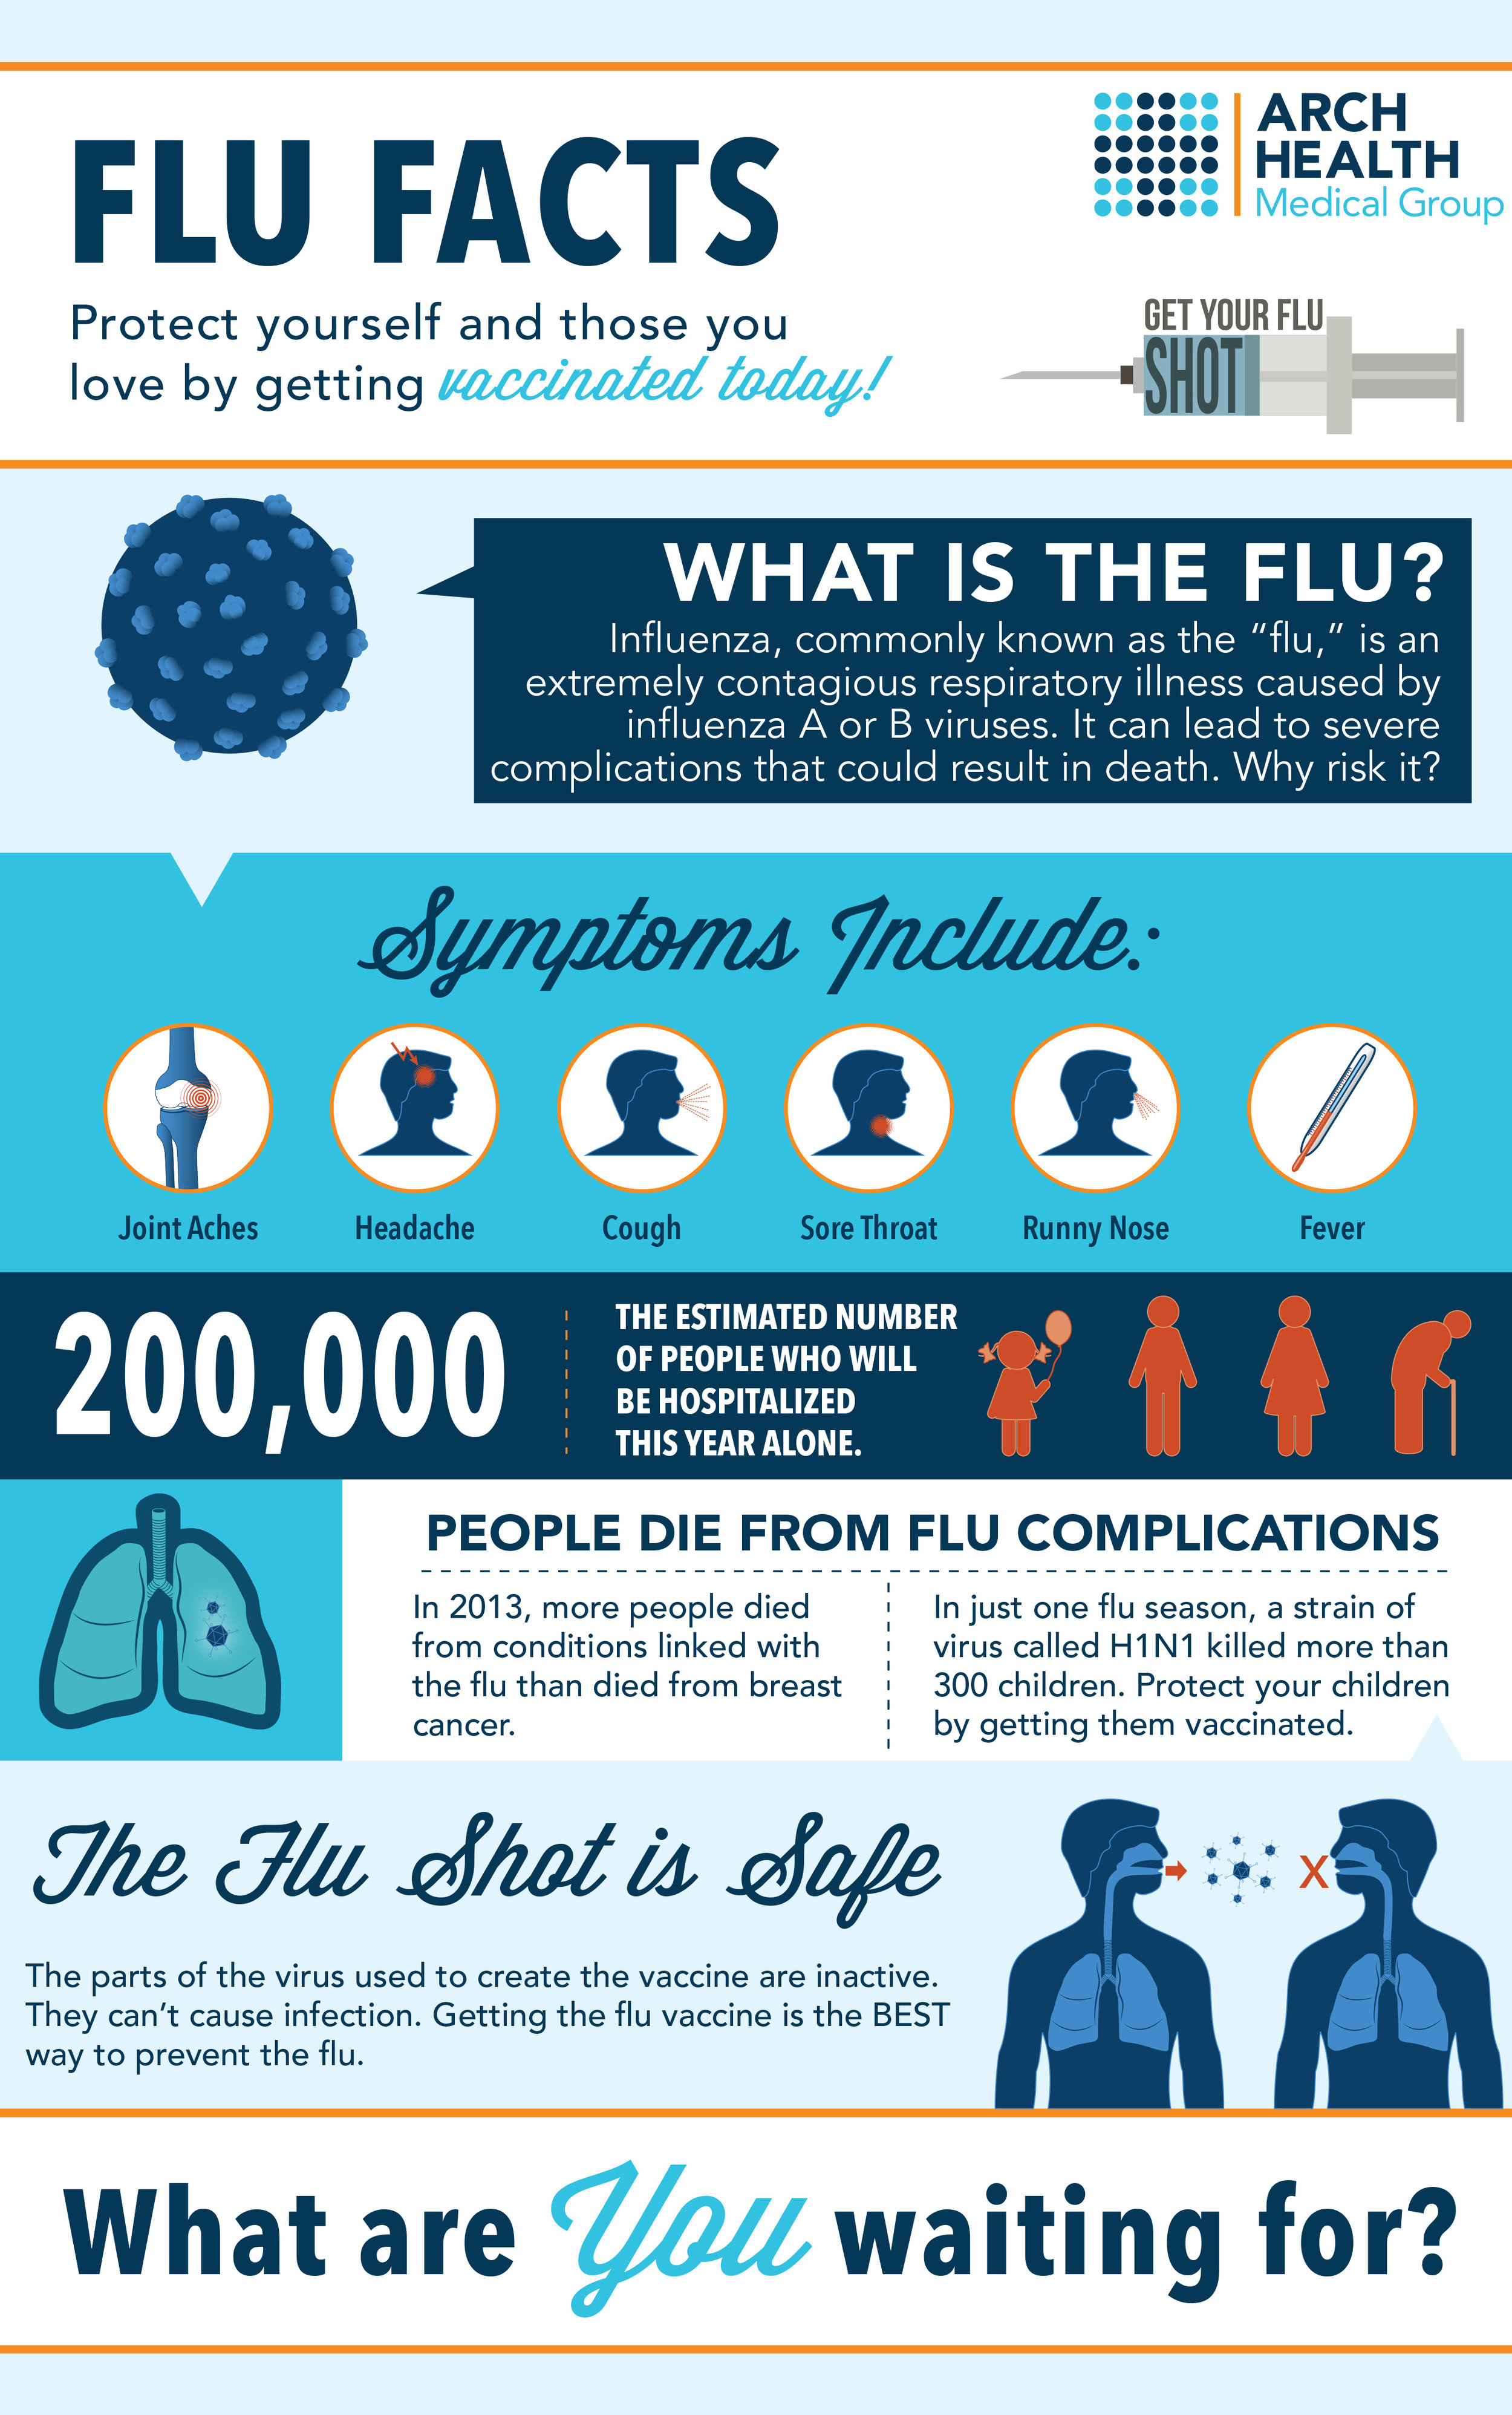 Arch Health Medical Group - INFOGRAPHIC DESIGNOne of the many different assets I got to design while working for Arch Health Medical Group was this Flu Facts Infographic.From being placed in exam room to being in waiting rooms, this infographic hopefully helped educate those patients on the importance of the flu shot.To learn more about this company, click on the view button below.